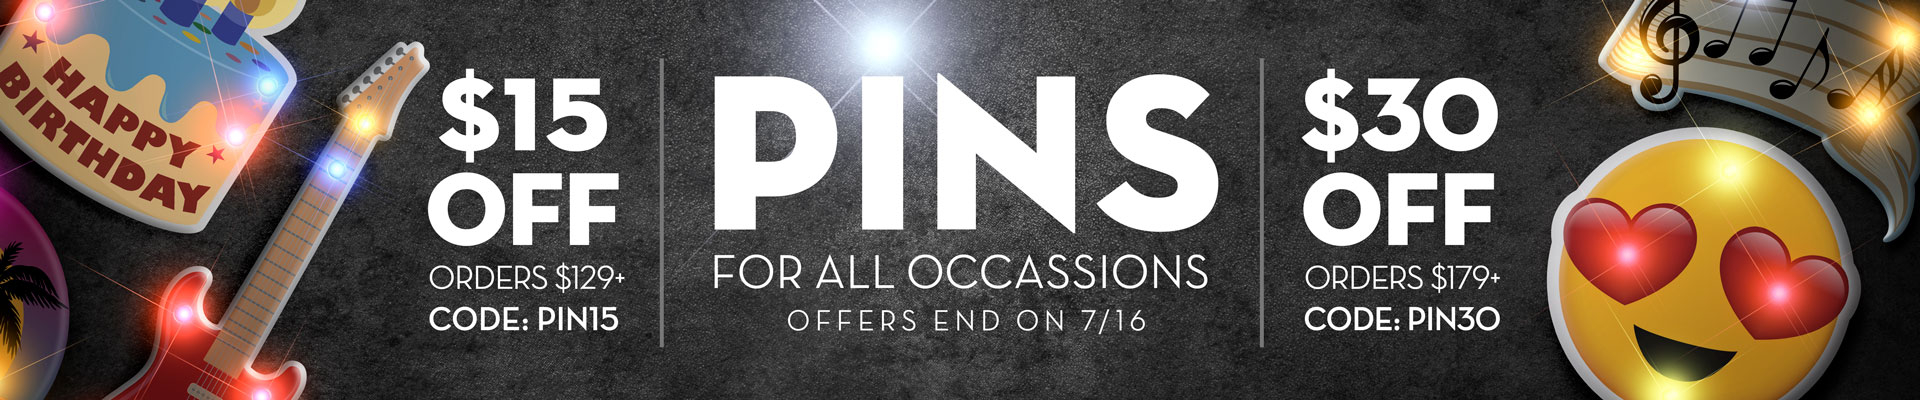 Pins and Body Lights promotional banner